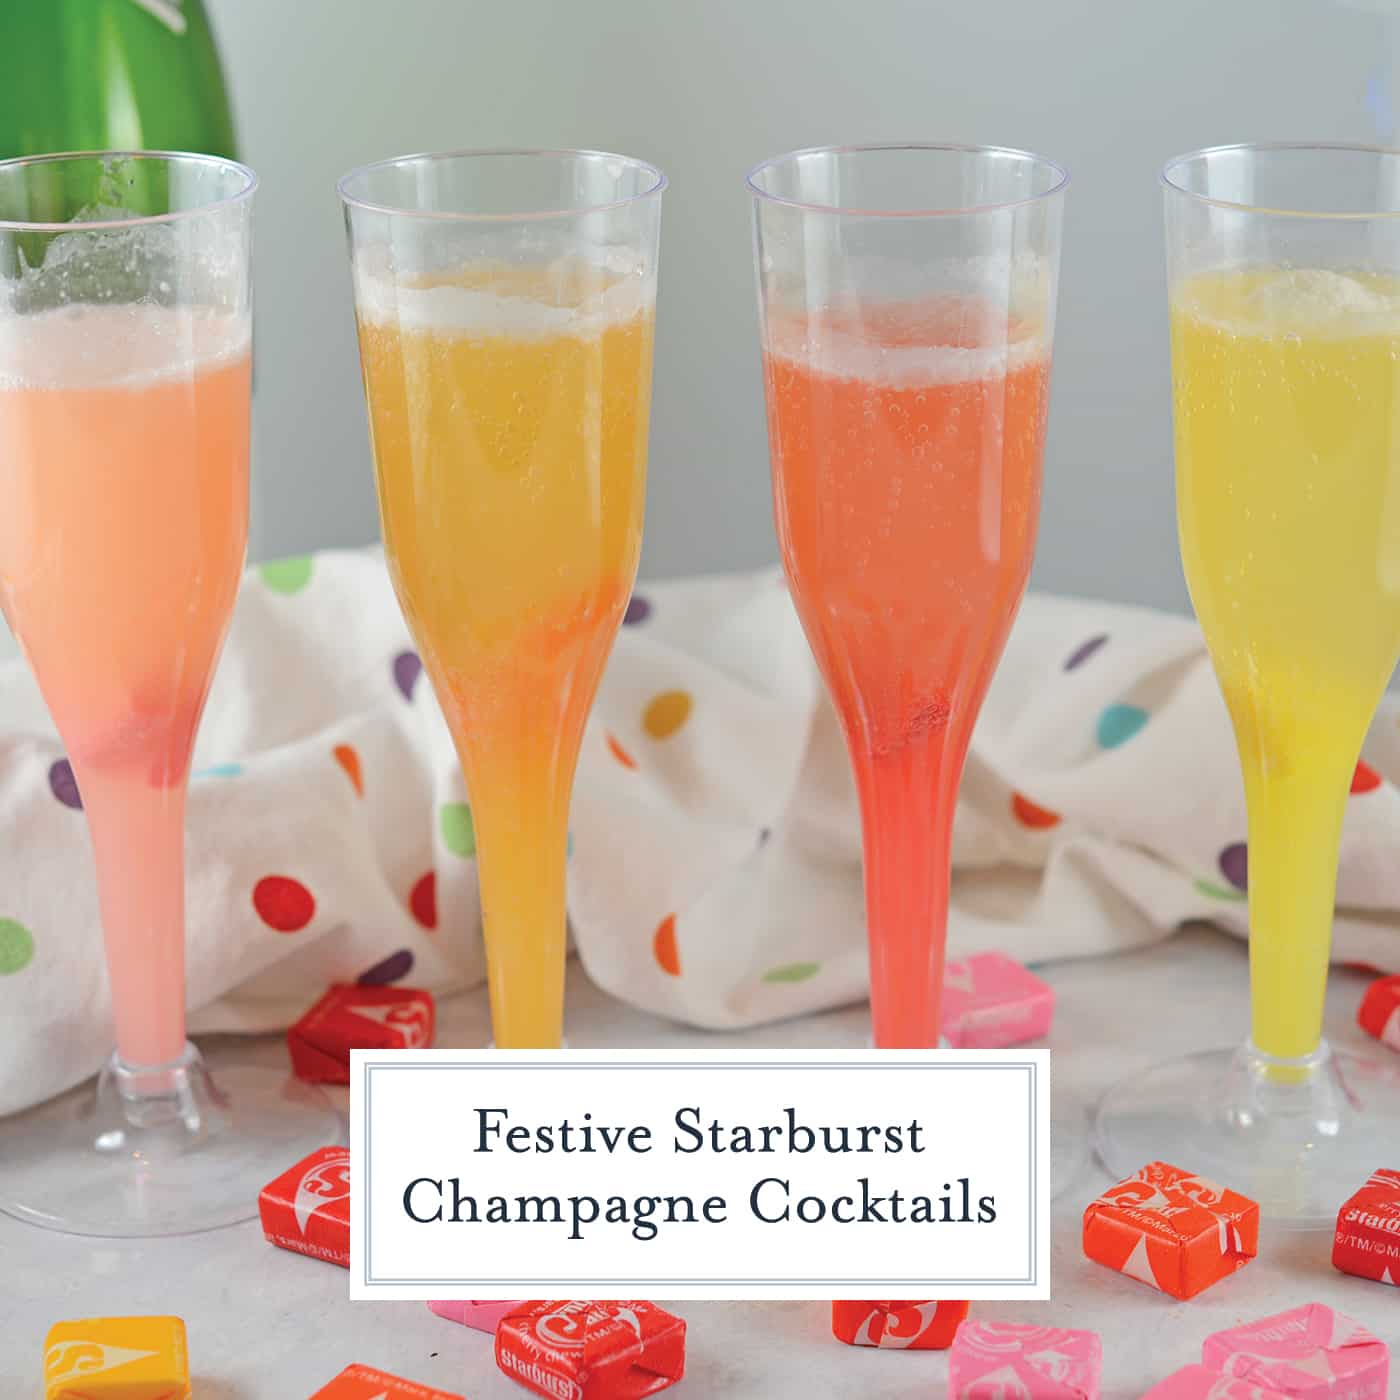 Make a new Starburst Champagne Cocktails using actual Starburst candy! Add your favorite Starburst flavor to any sparkling wine or cider and allow to dissolve for beautiful color and fun flavor! #kiddiecocktails #champagnecocktails www.savoryexperiments.com